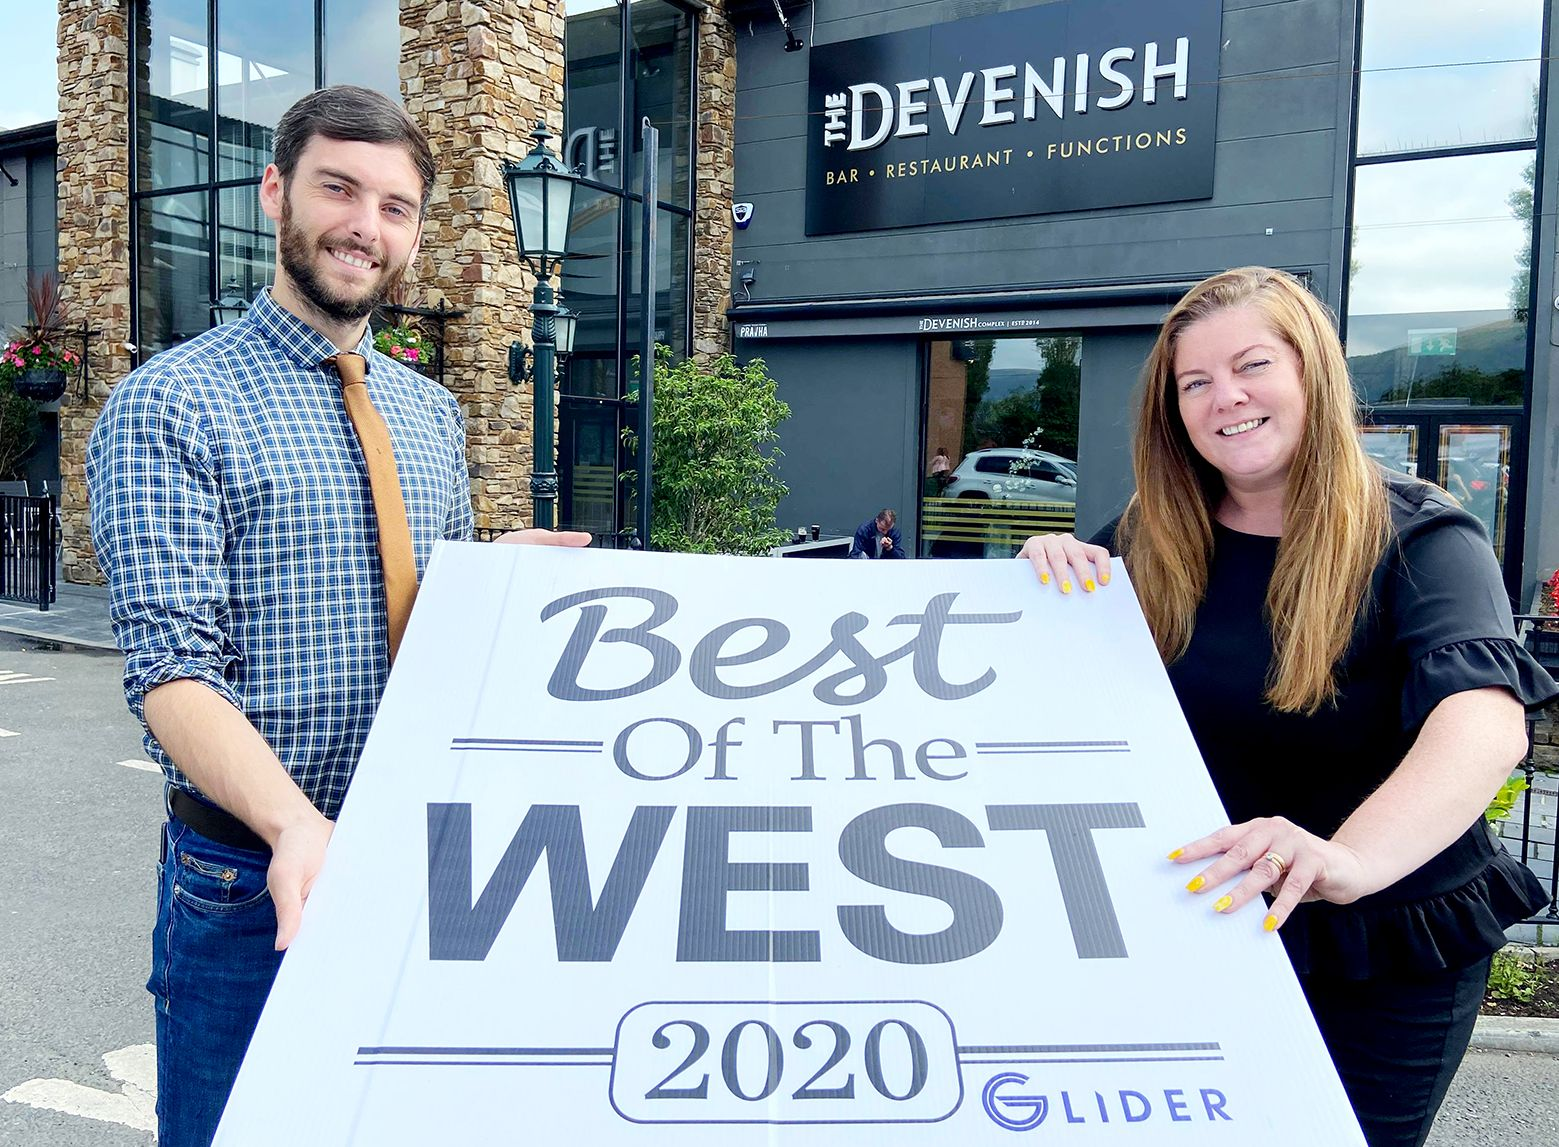 Best of the west at devenish